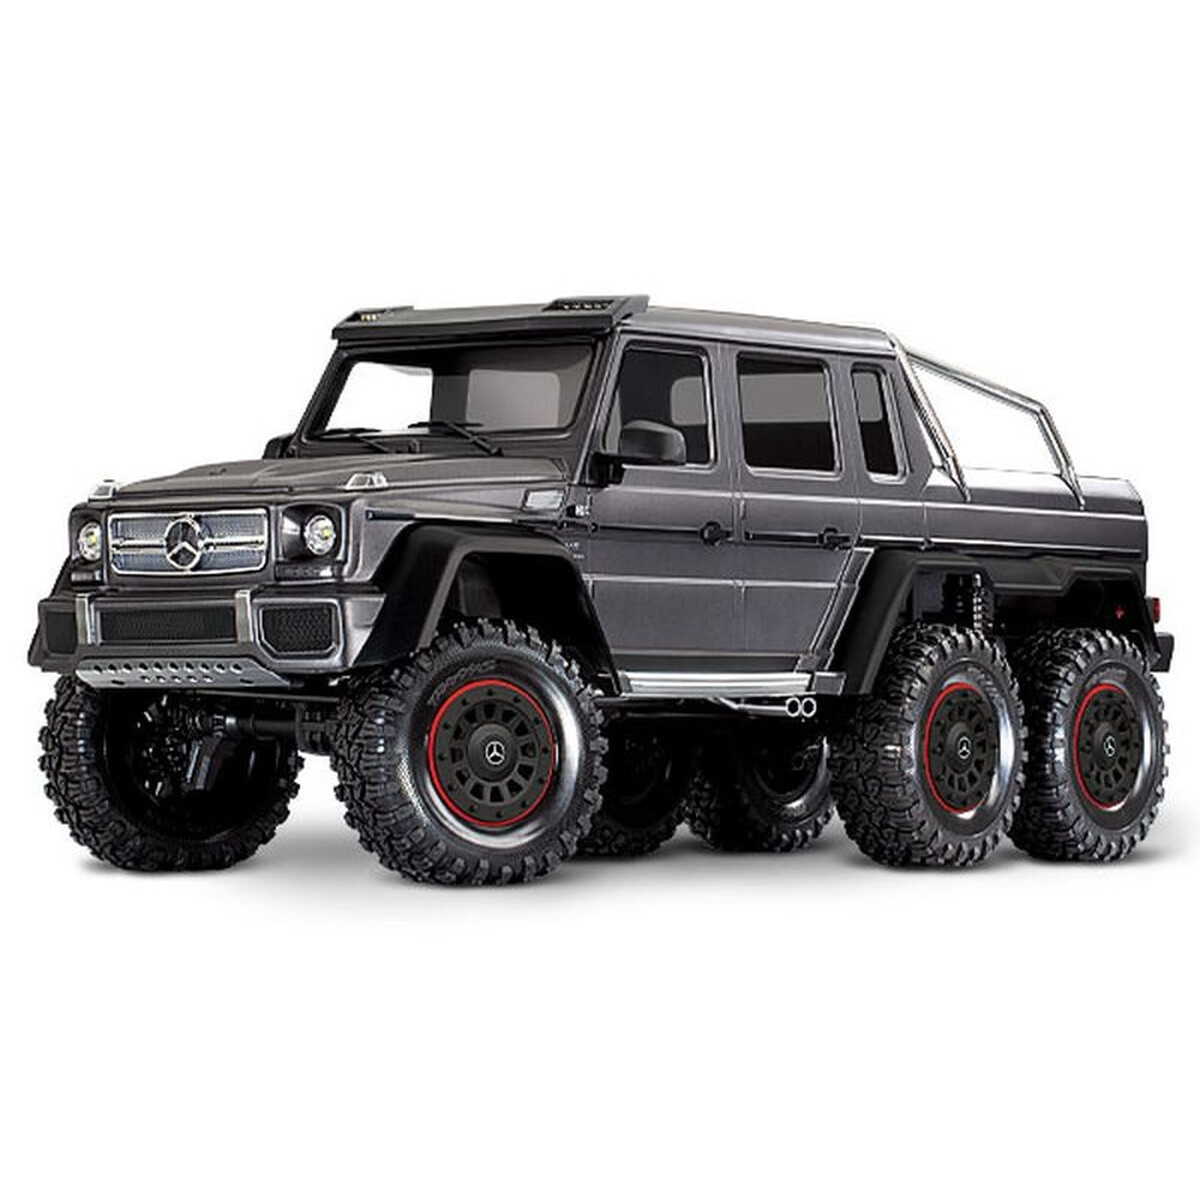 Traxxas Trx 6 Mercedes Benz G63 Amg 6x6 Rtr W Out Battery Charger Si